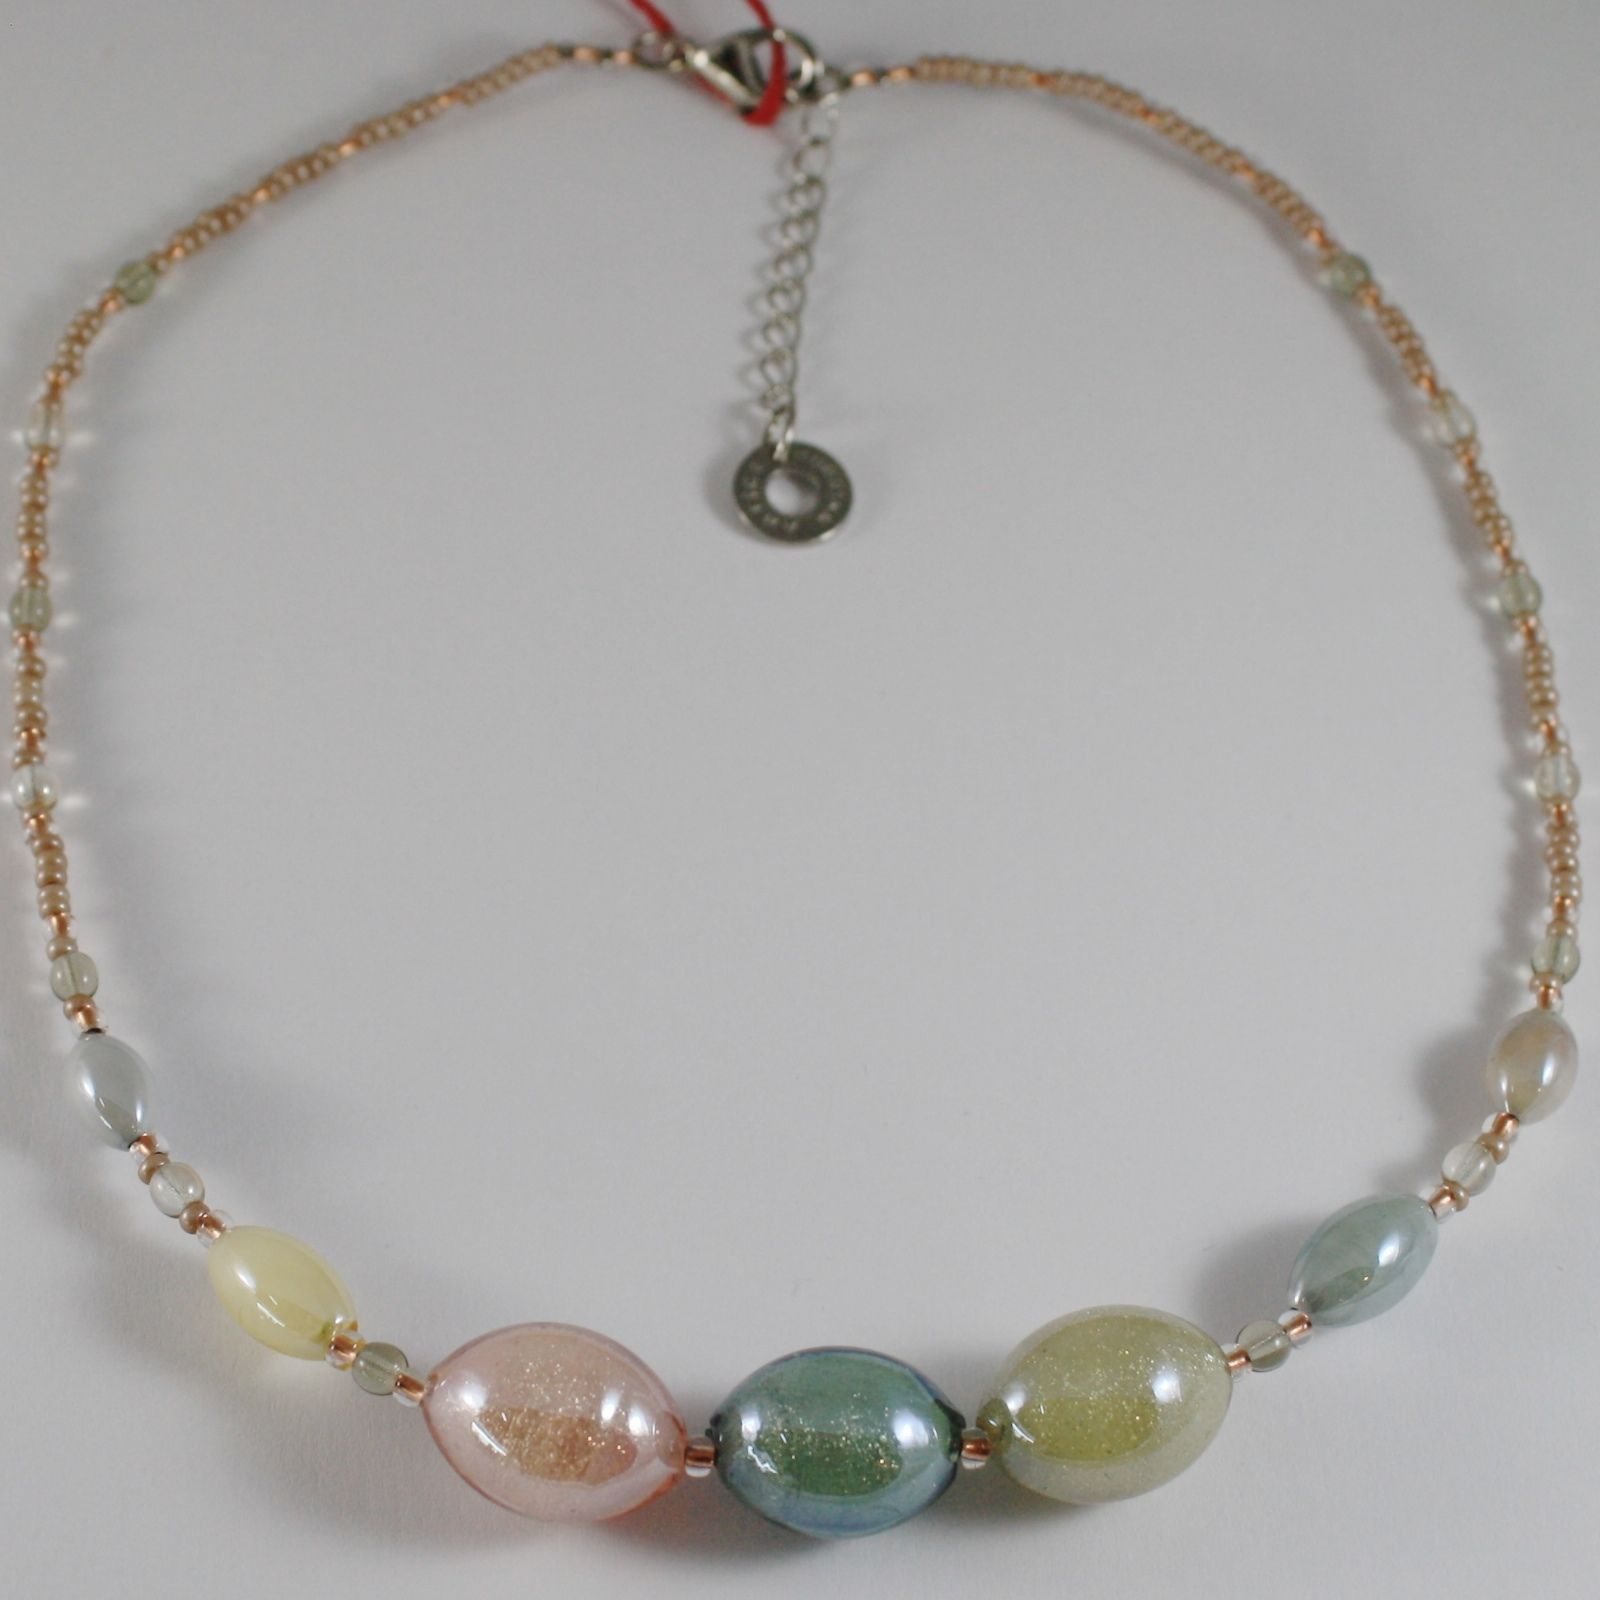 COLLIER ANTICA MURRINA VENEZIA AVEC VERRE DE MURANO BEIGE ROSE GRIS CO994A03